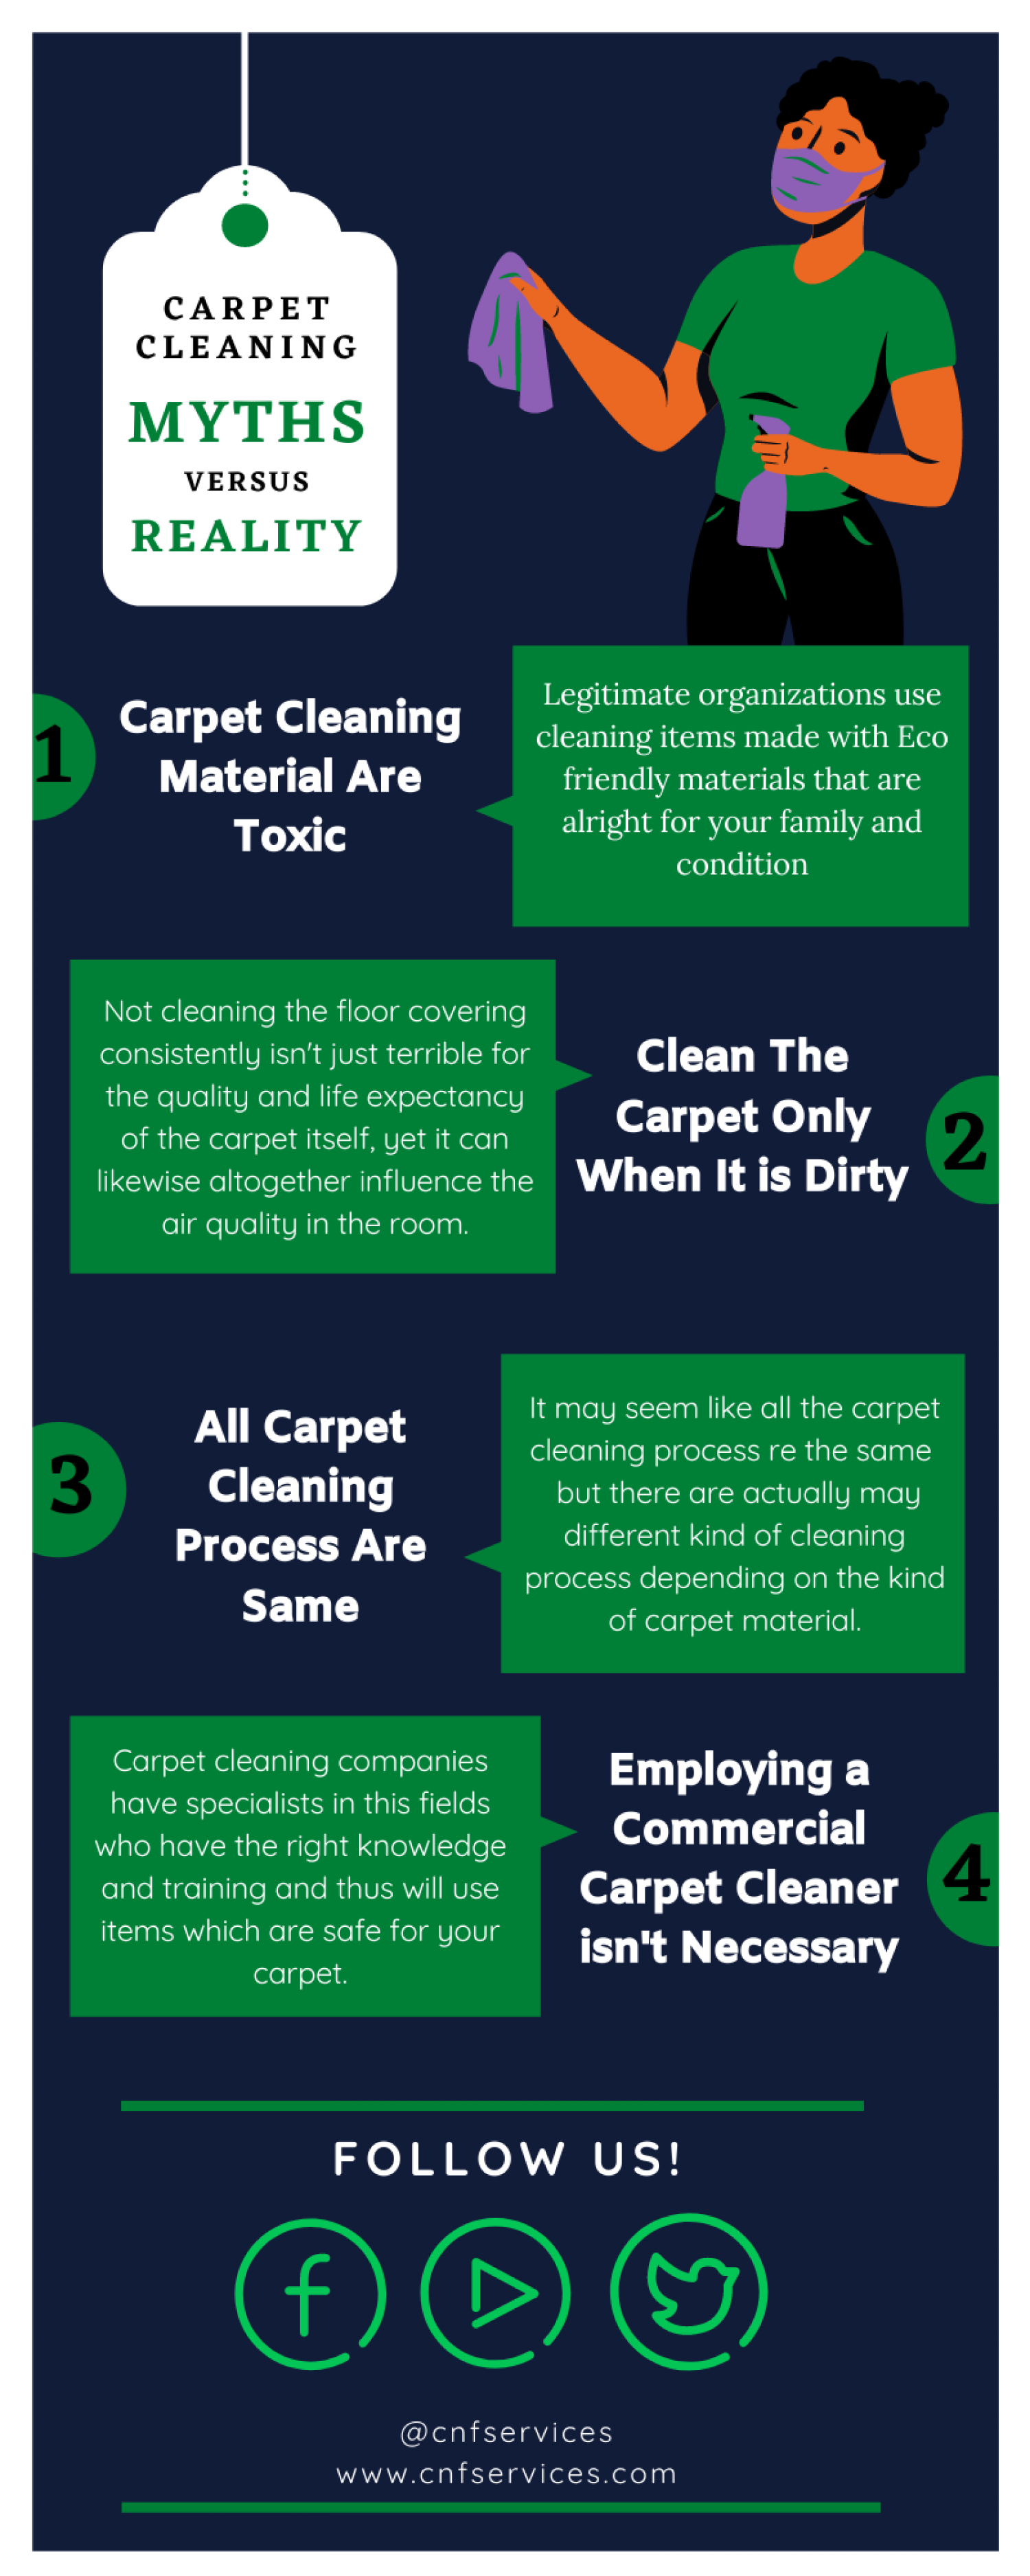 Carpet Cleaning - Myths or Reality Infographic